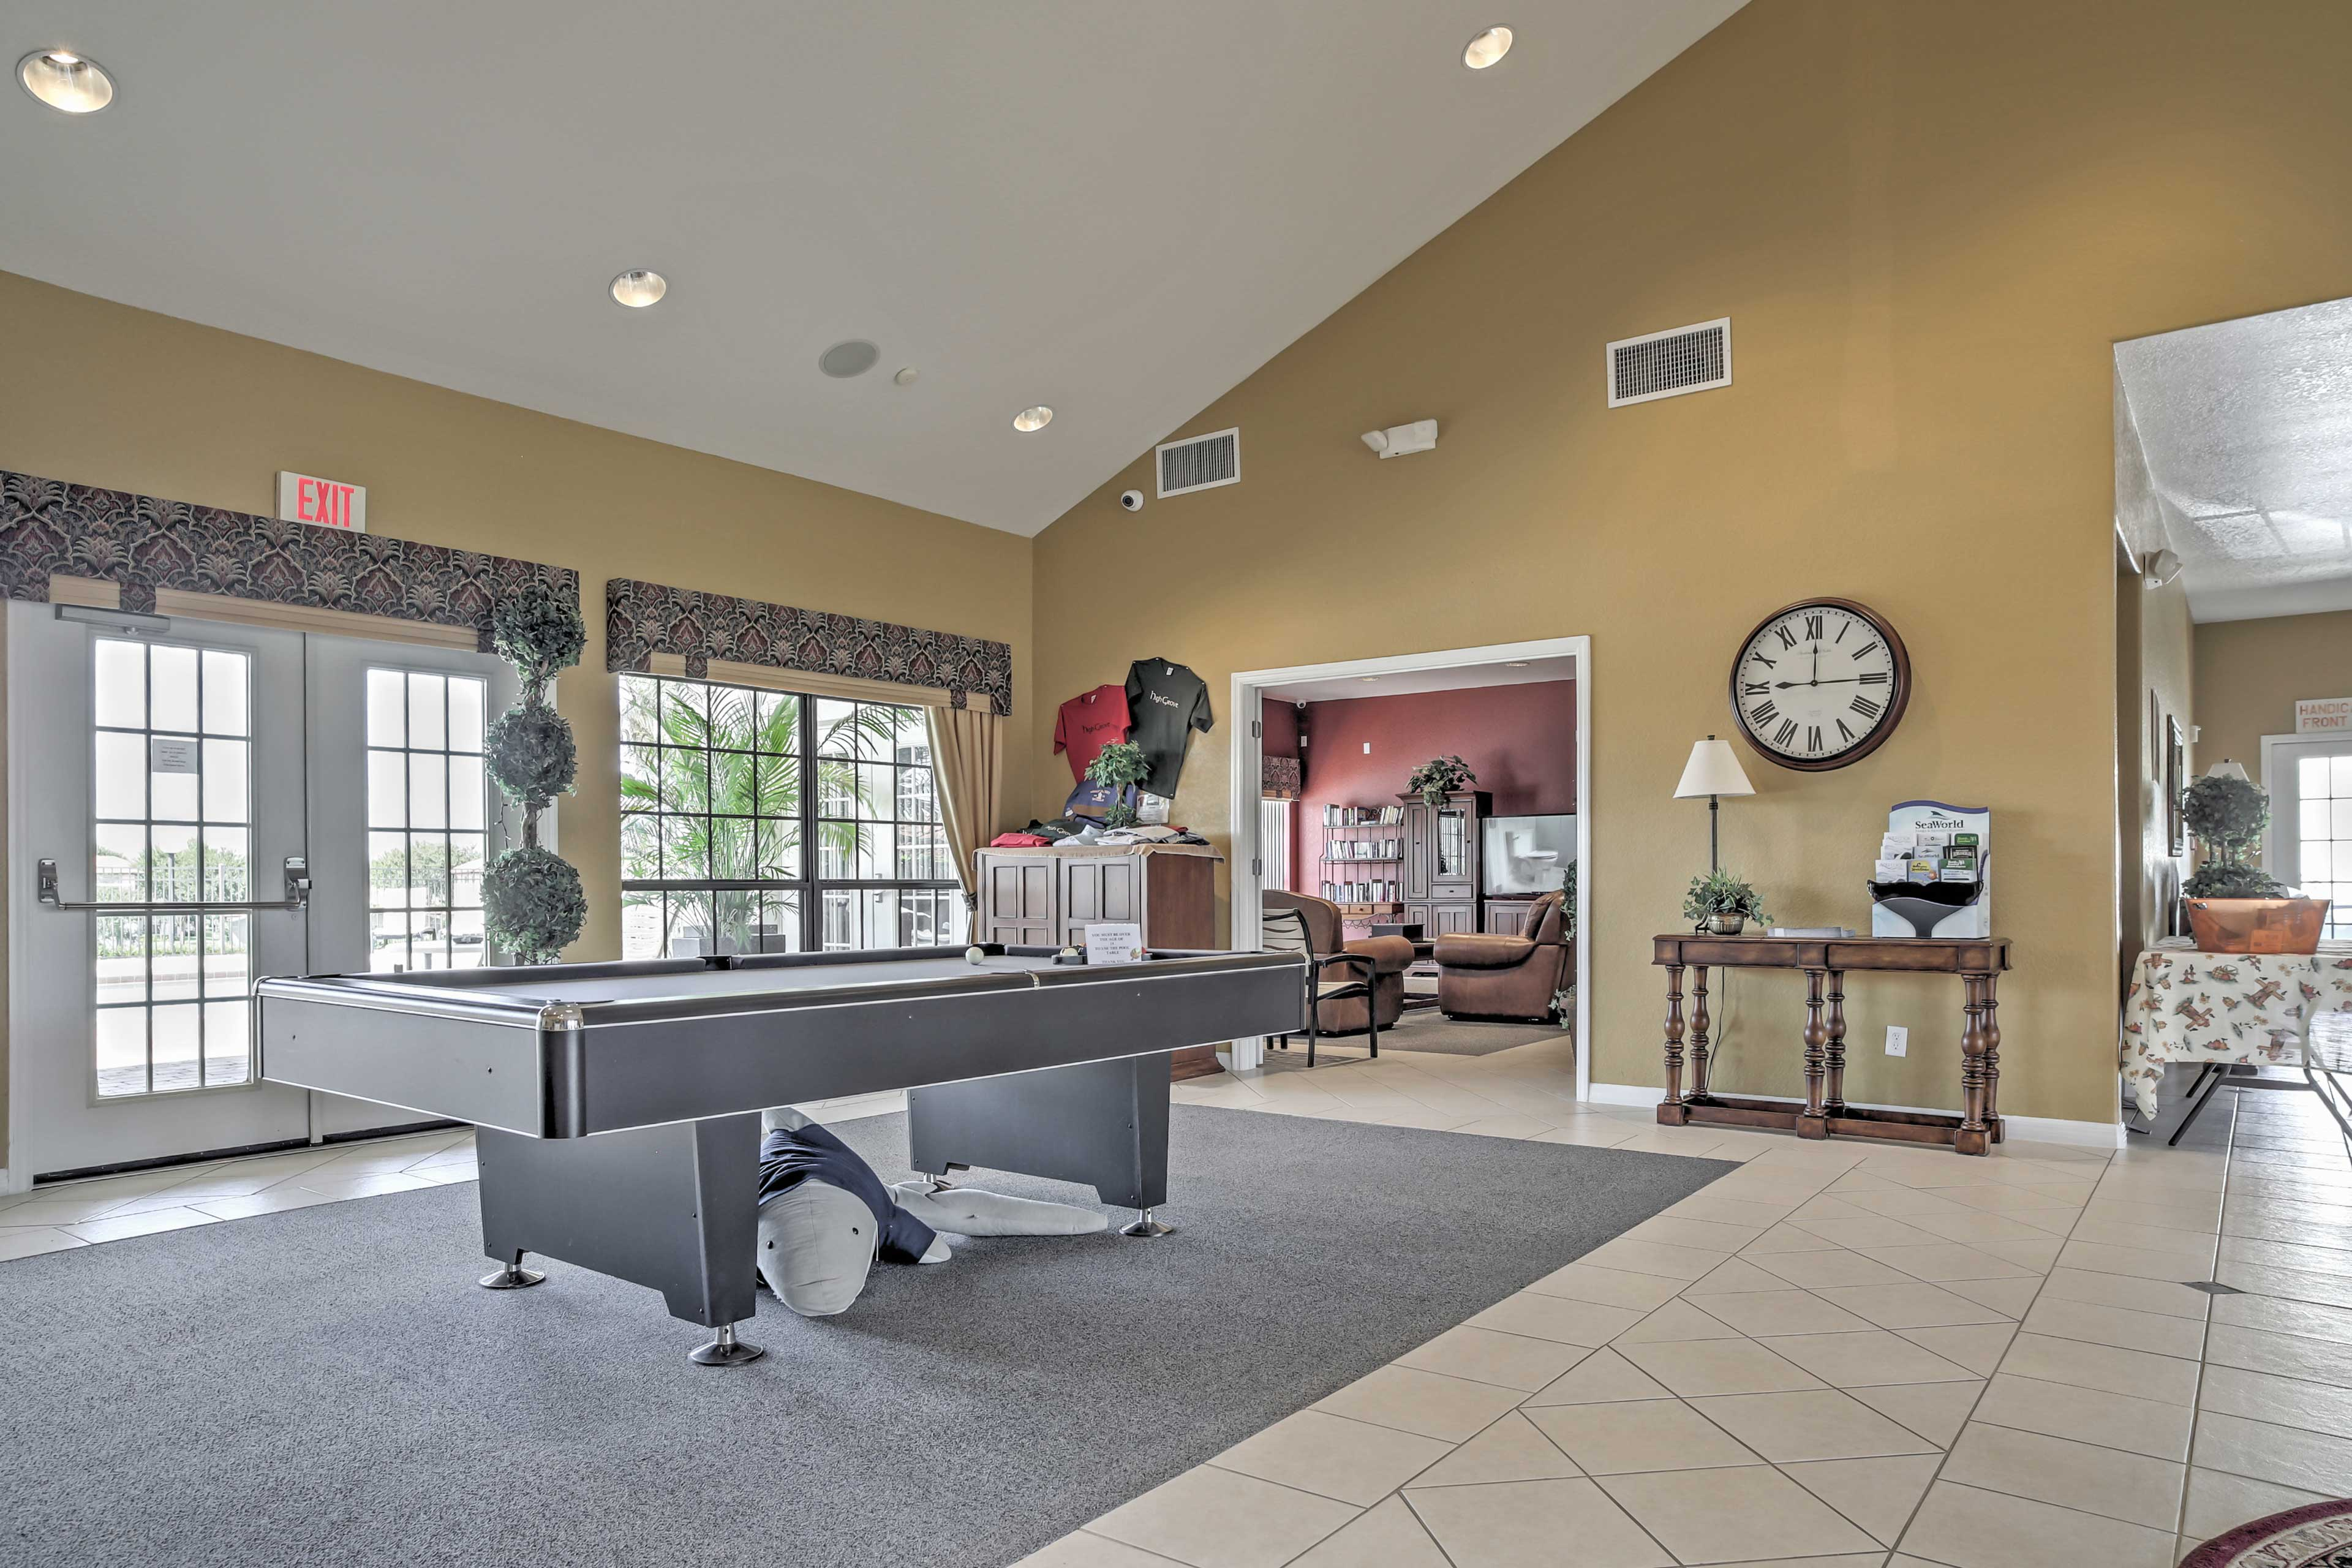 The community clubhouse offers a whole other area to socialize.